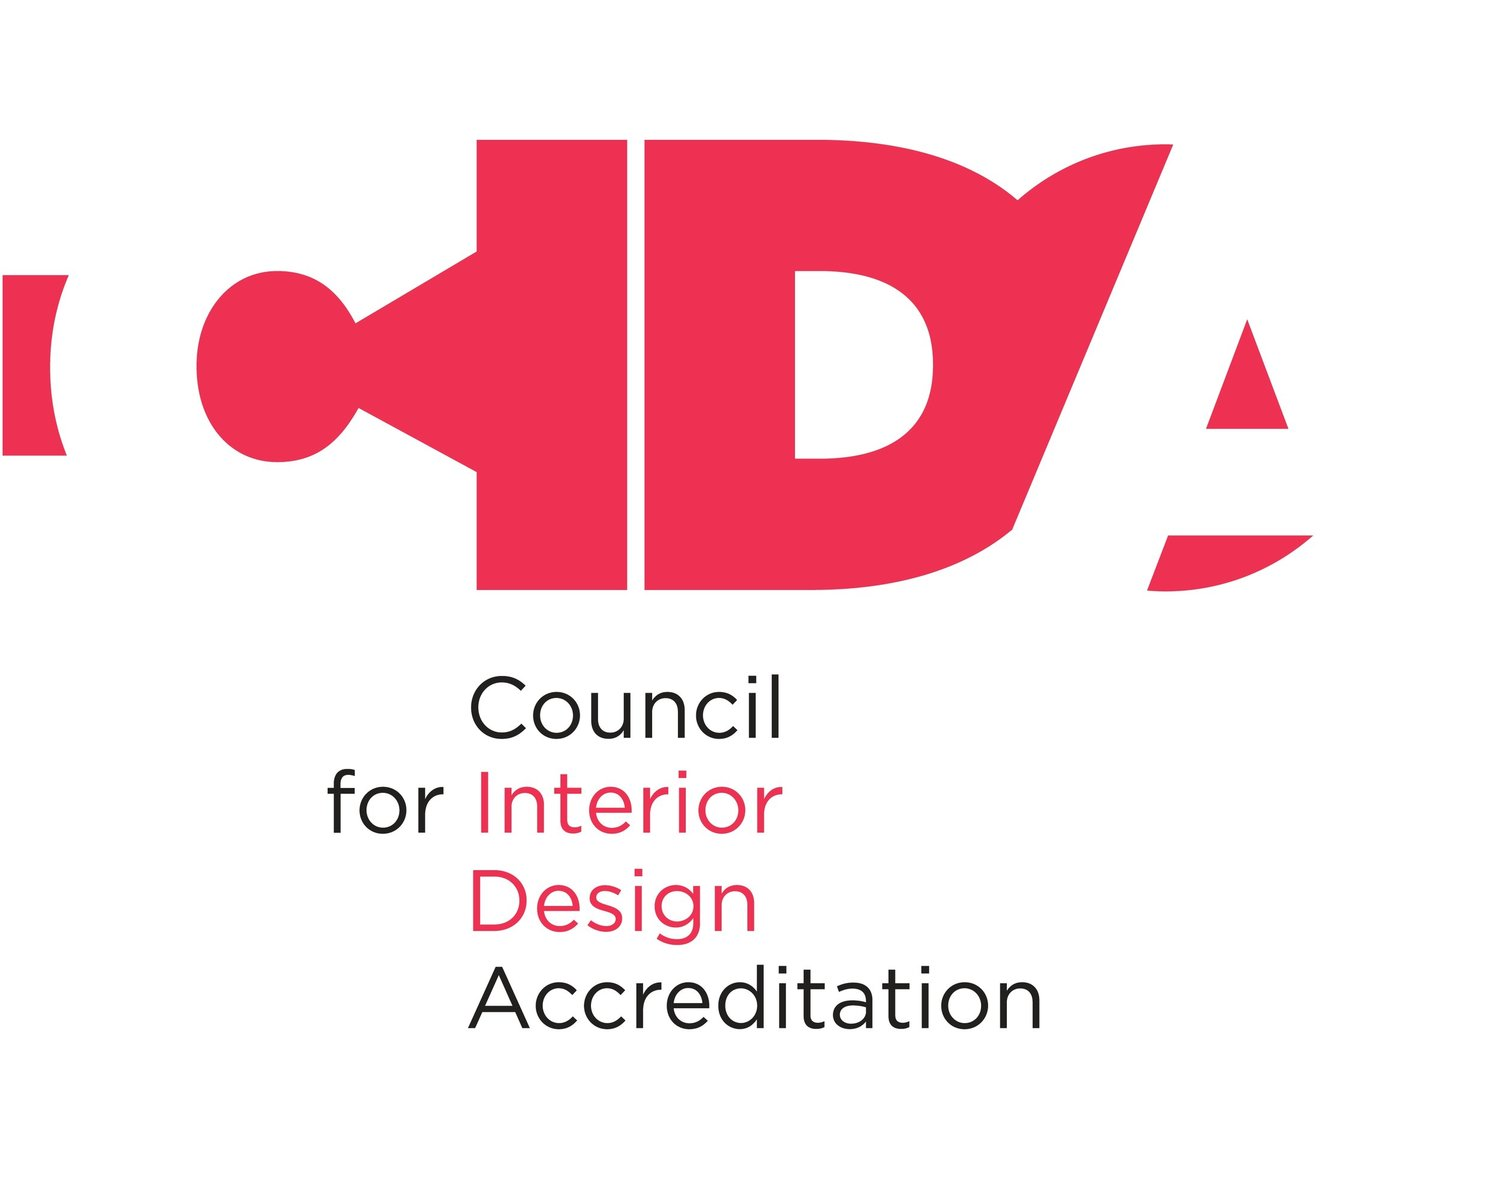 Cida Calls For Community Comment On Revisions To Professional